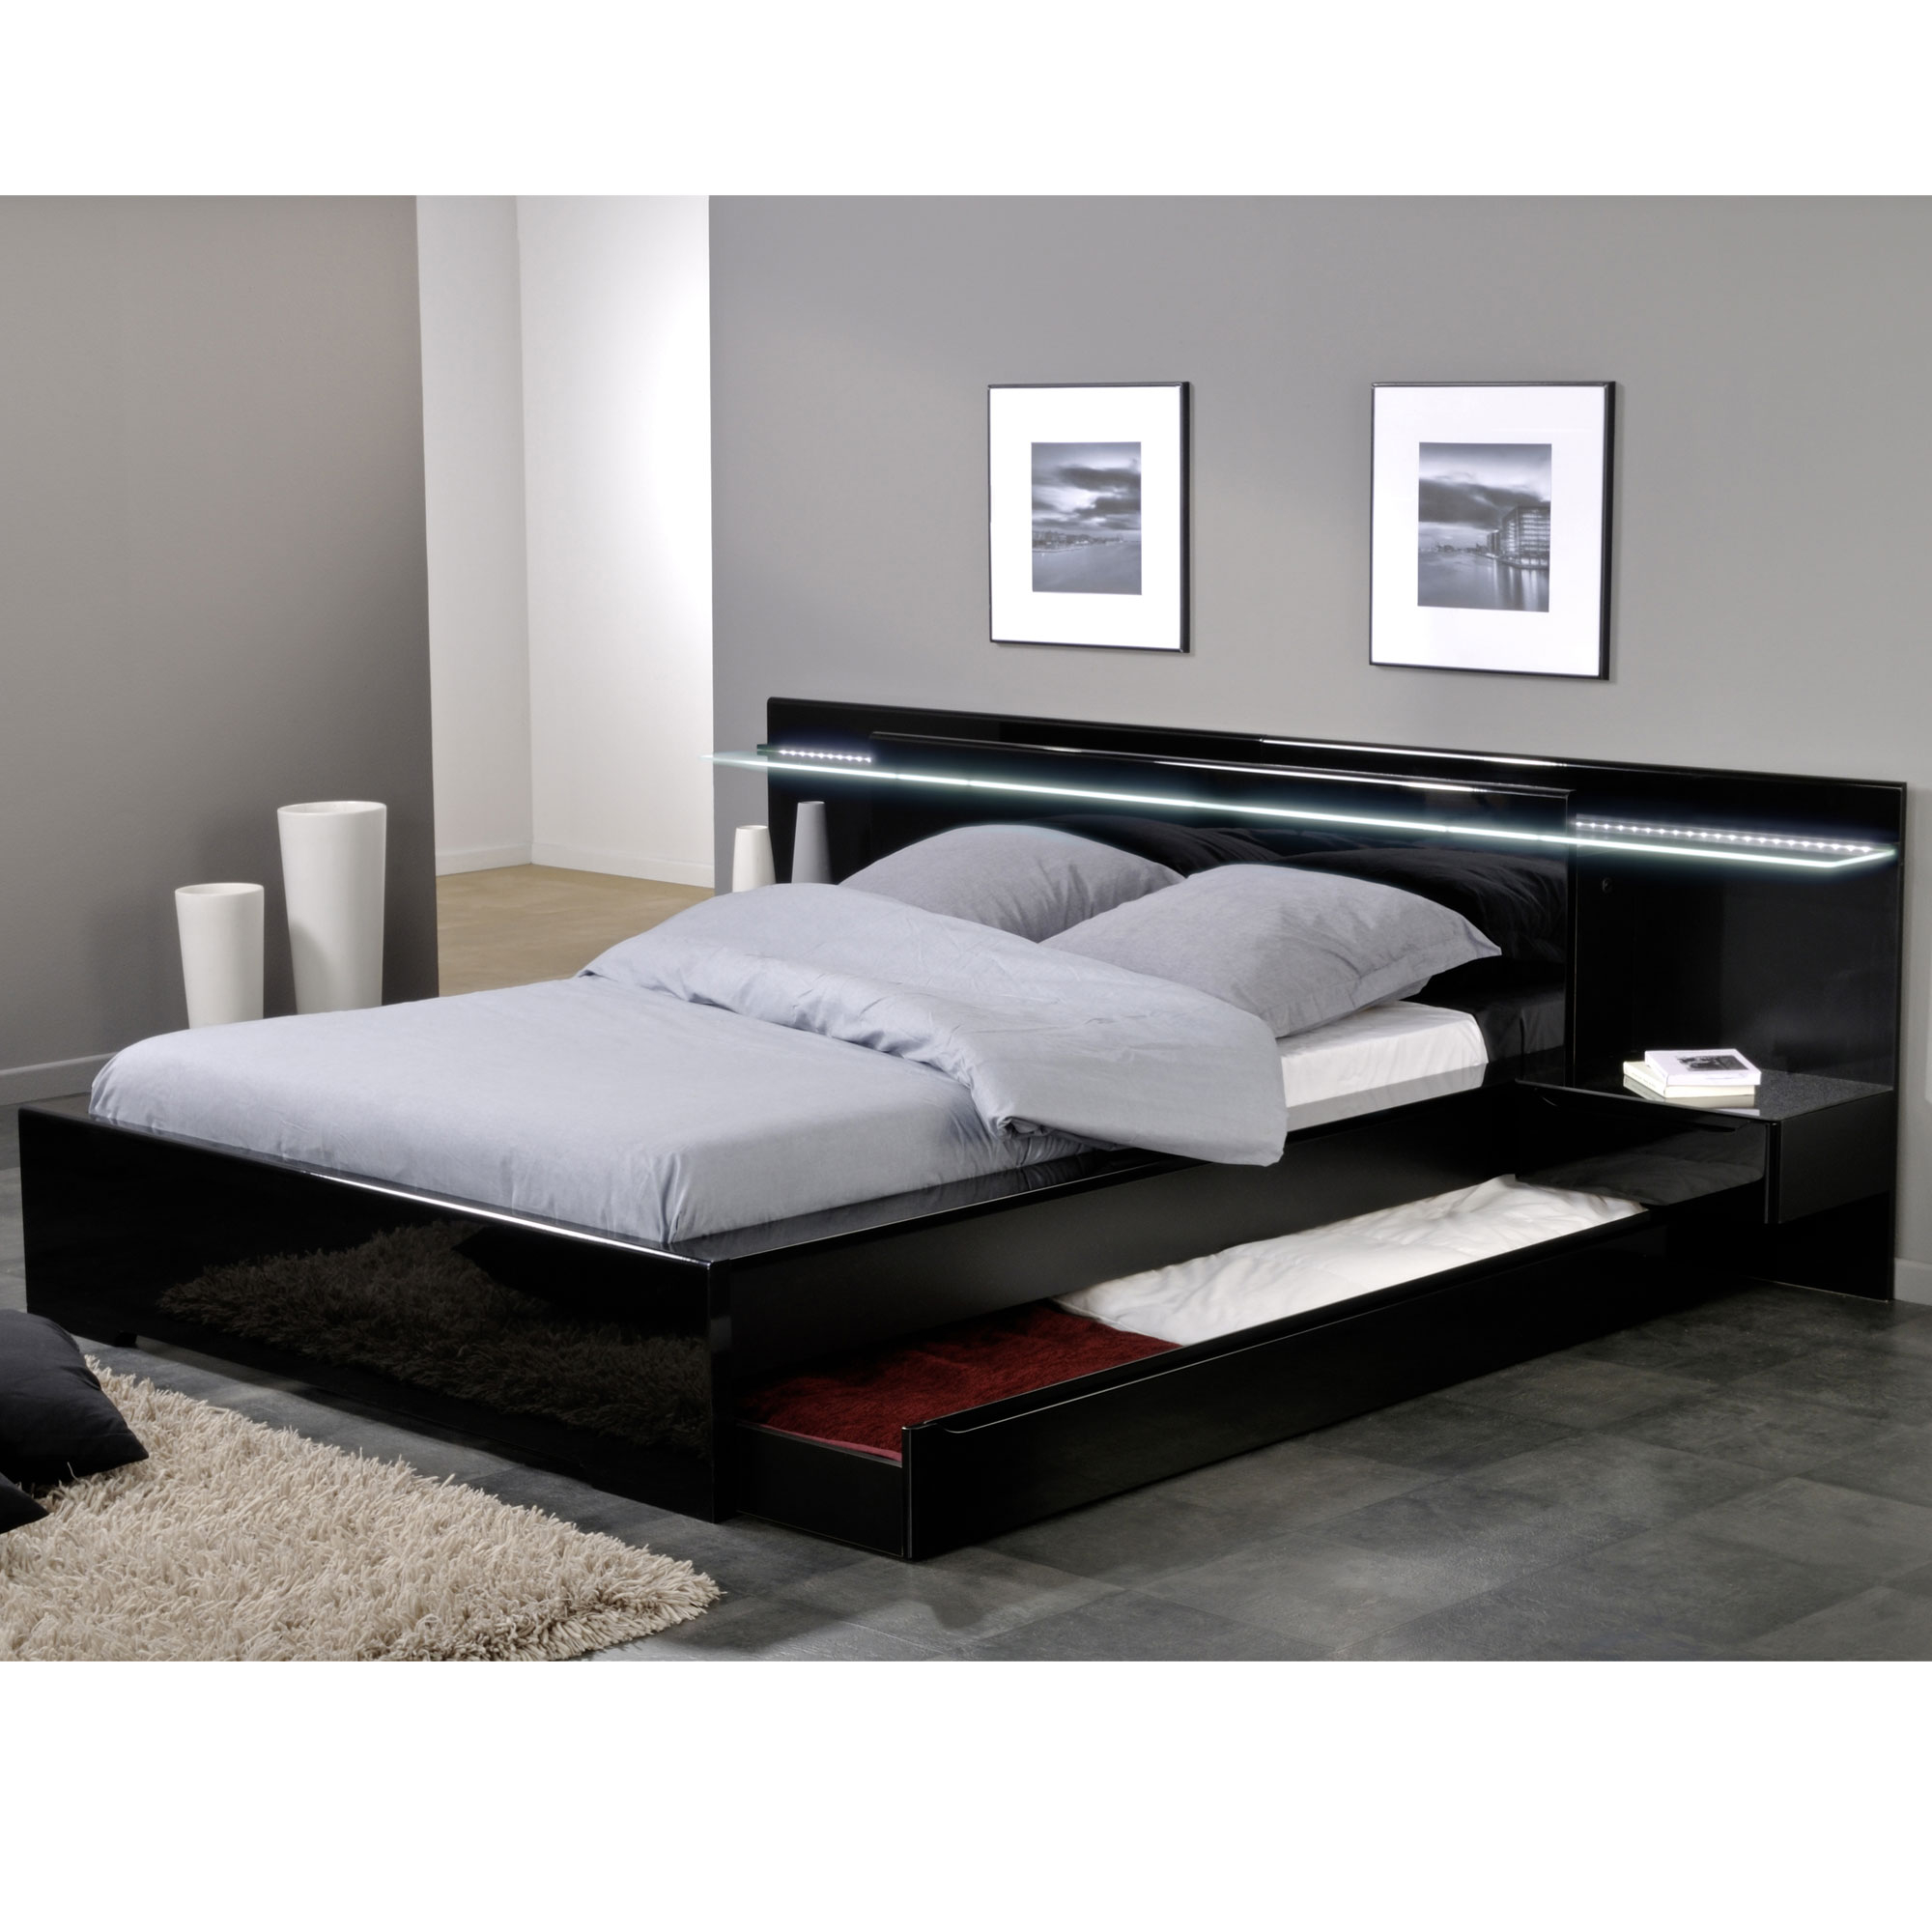 tete de lit noir laque. Black Bedroom Furniture Sets. Home Design Ideas